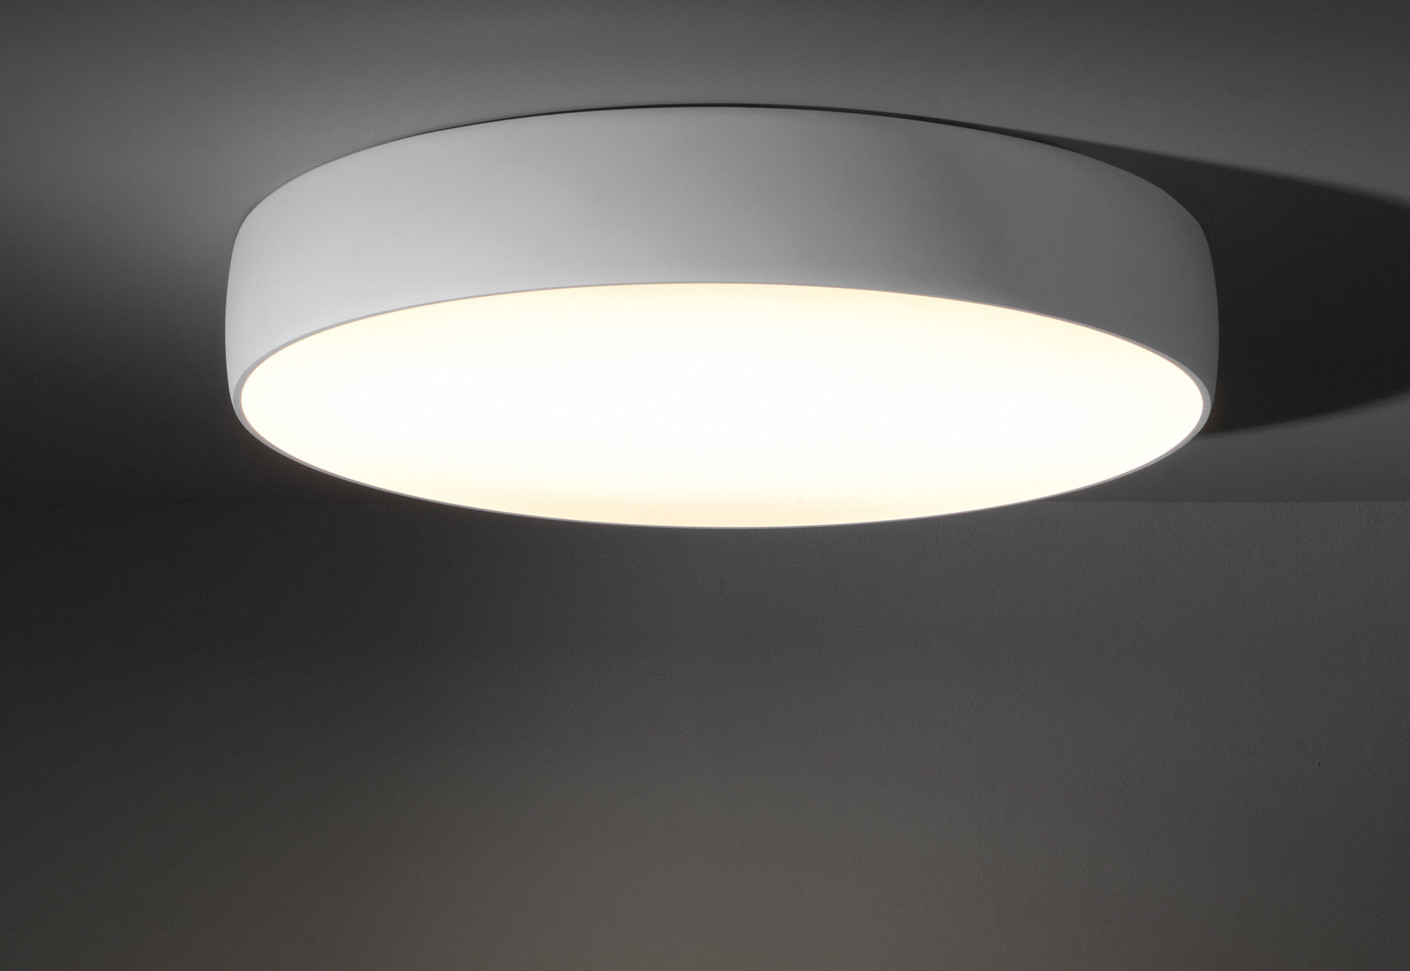 Flat Moon ceiling lamp by Modular Lighting Instruments